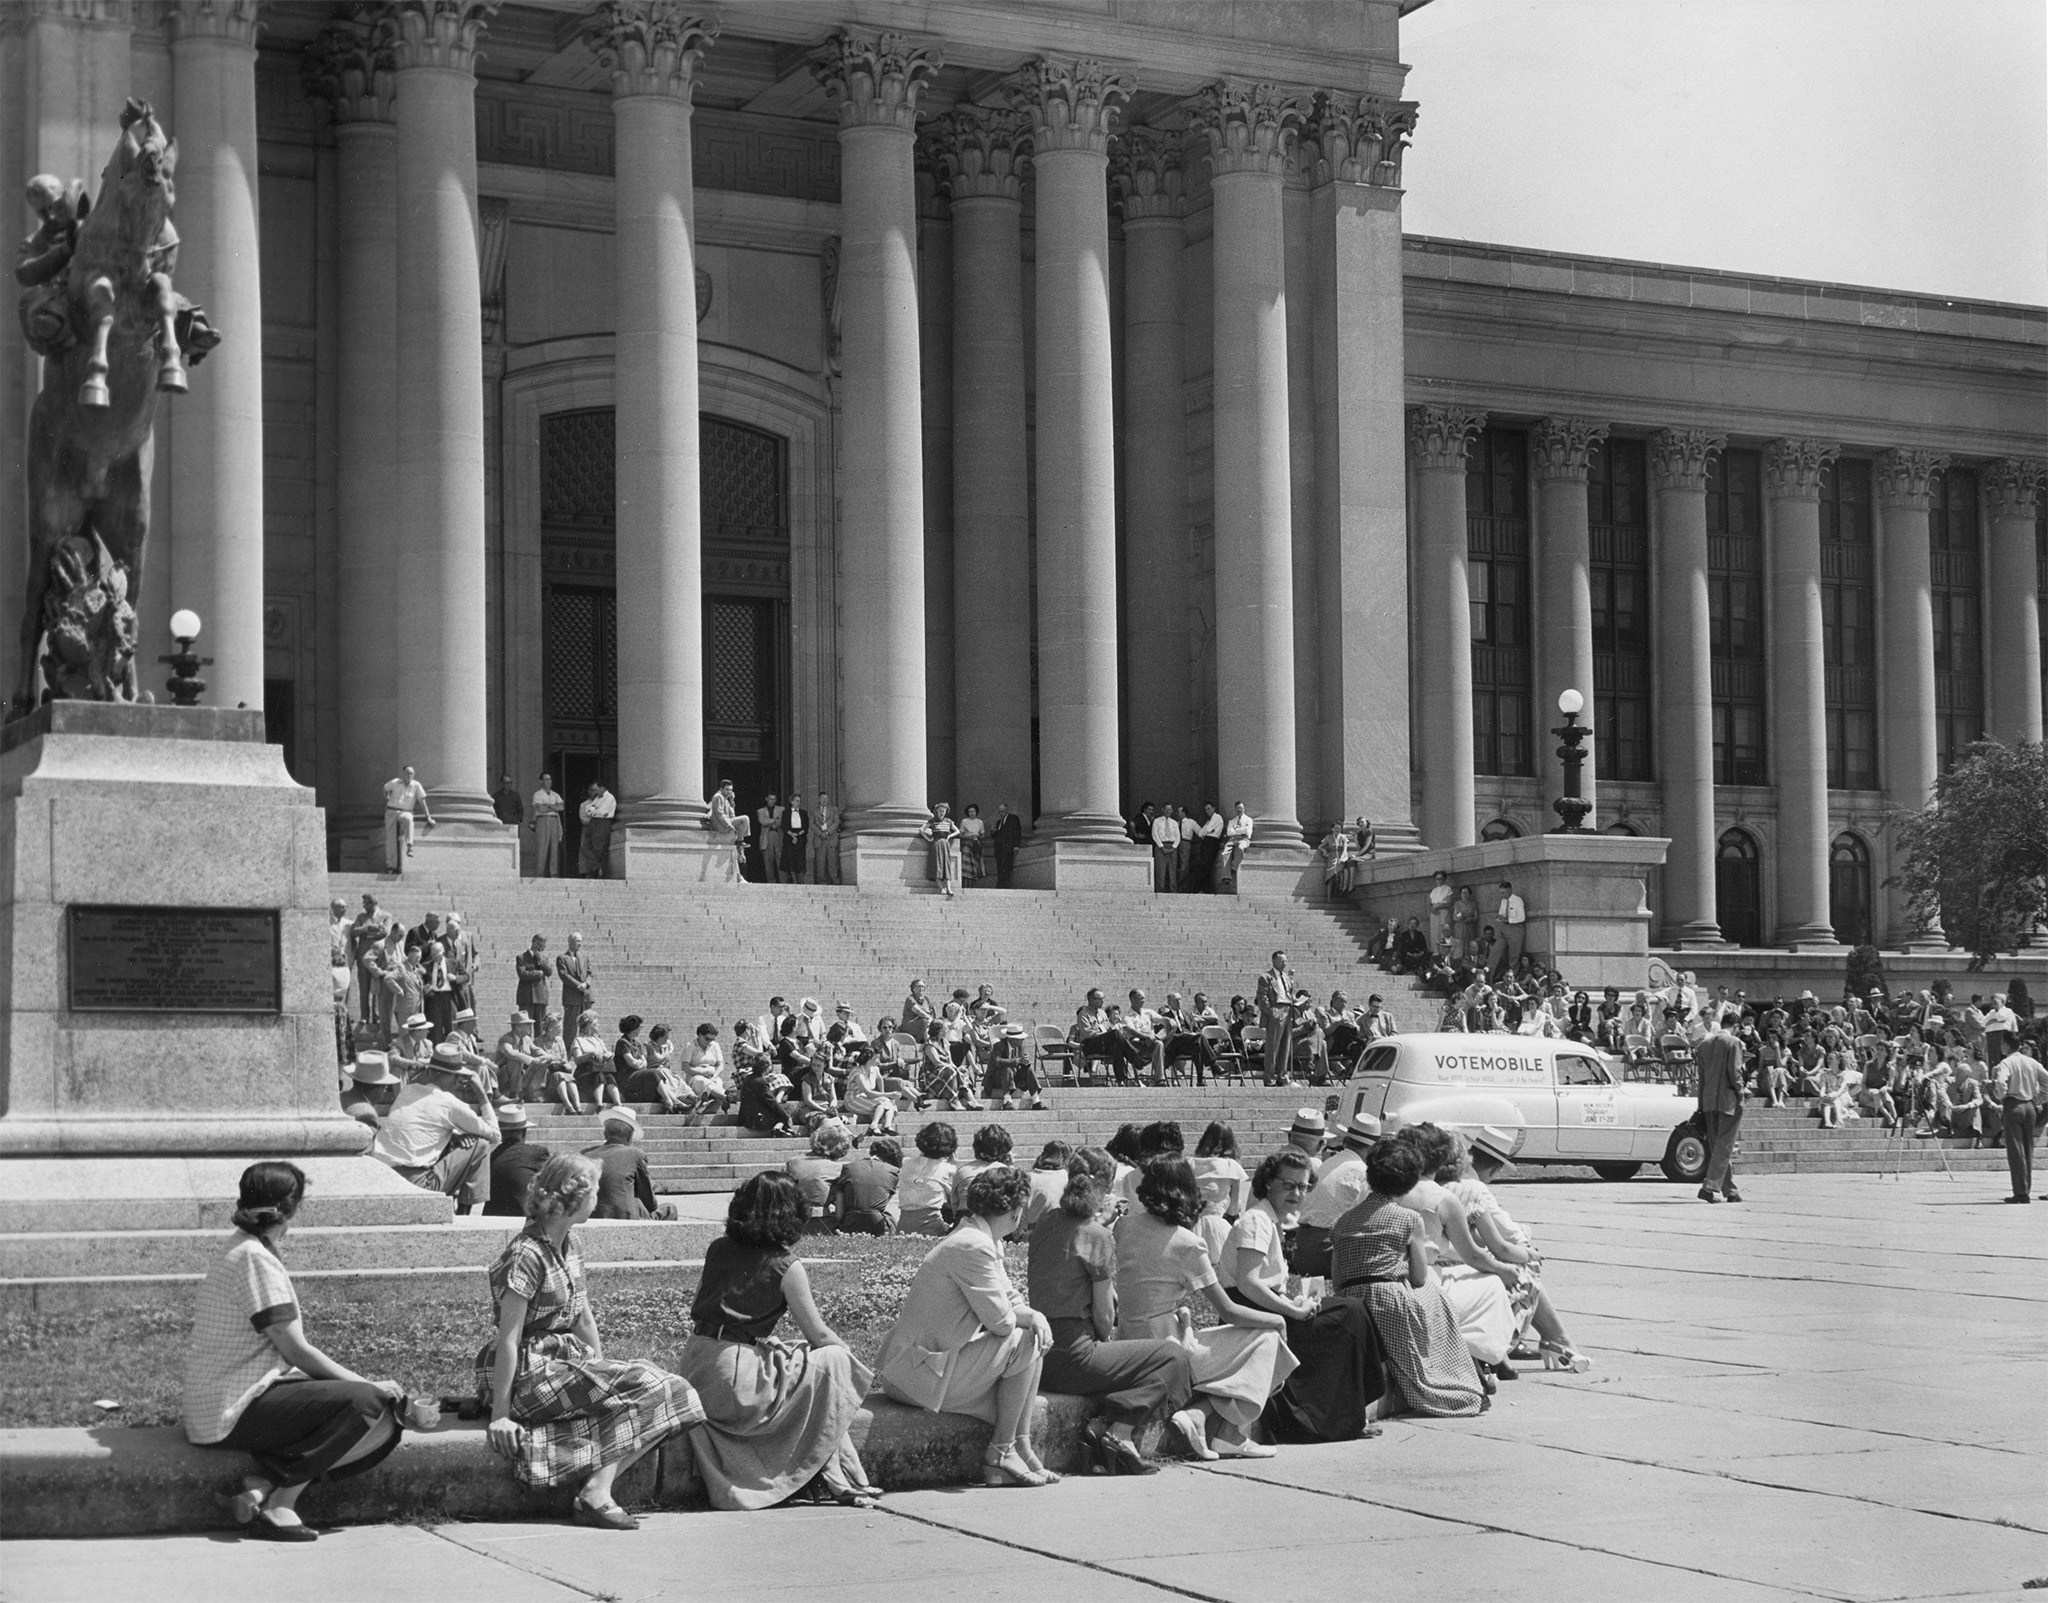 During Oklahoma Farm Bureau's get-out-the-vote campaign, the organization launched the Votemobile, a sound truck that toured the state spotlighting the dates for registration and voting. The story attracted nationwide attention after debuting at the Votemobile's ceremony on the south steps of the Oklahoma State Capitol May 26, 1952, as shown above. After the ceremony, Gov. Johnston Murray pushed the red, white and blue vehicle a few feet, officially launching the campaign.